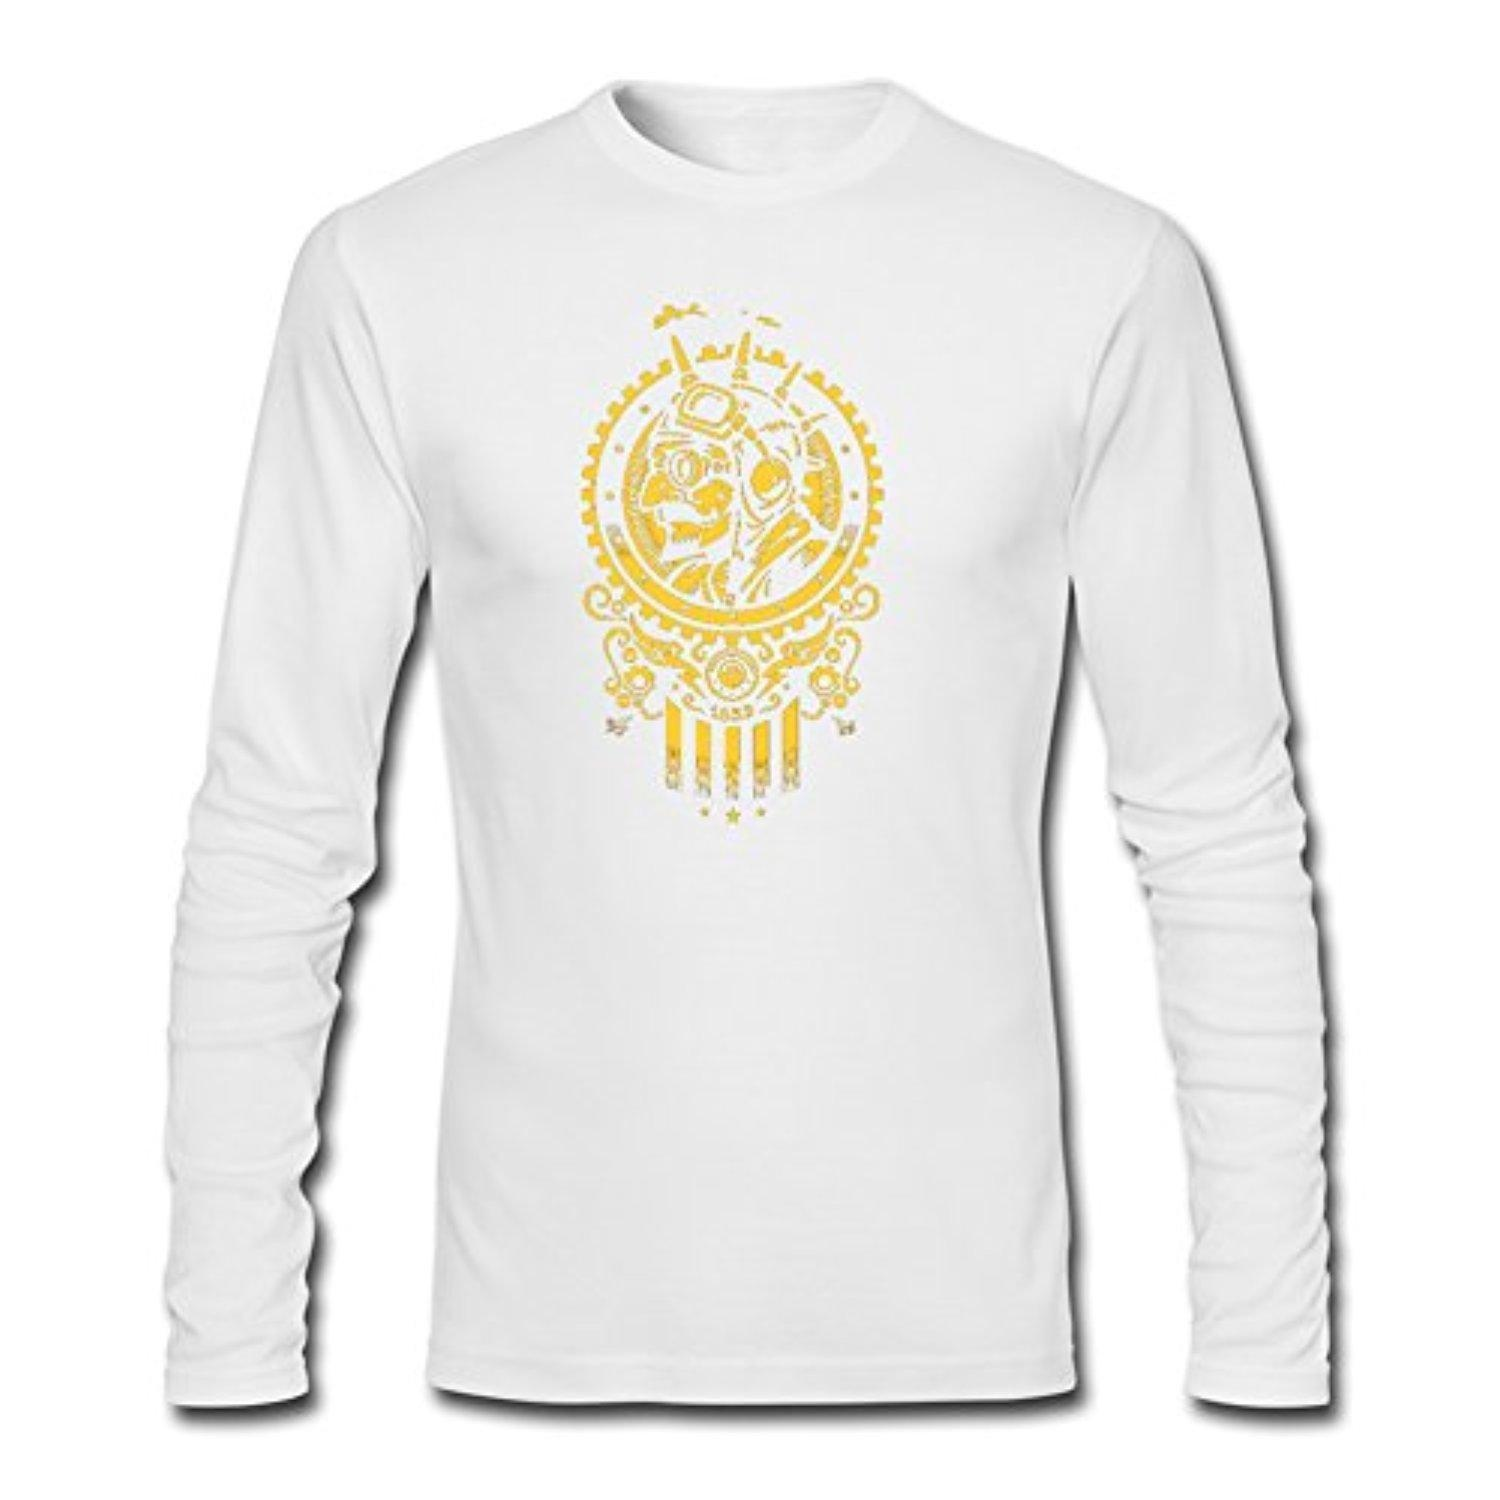 Steampunk 1852 for Men Printed Long Sleeve Cotton T-shirt